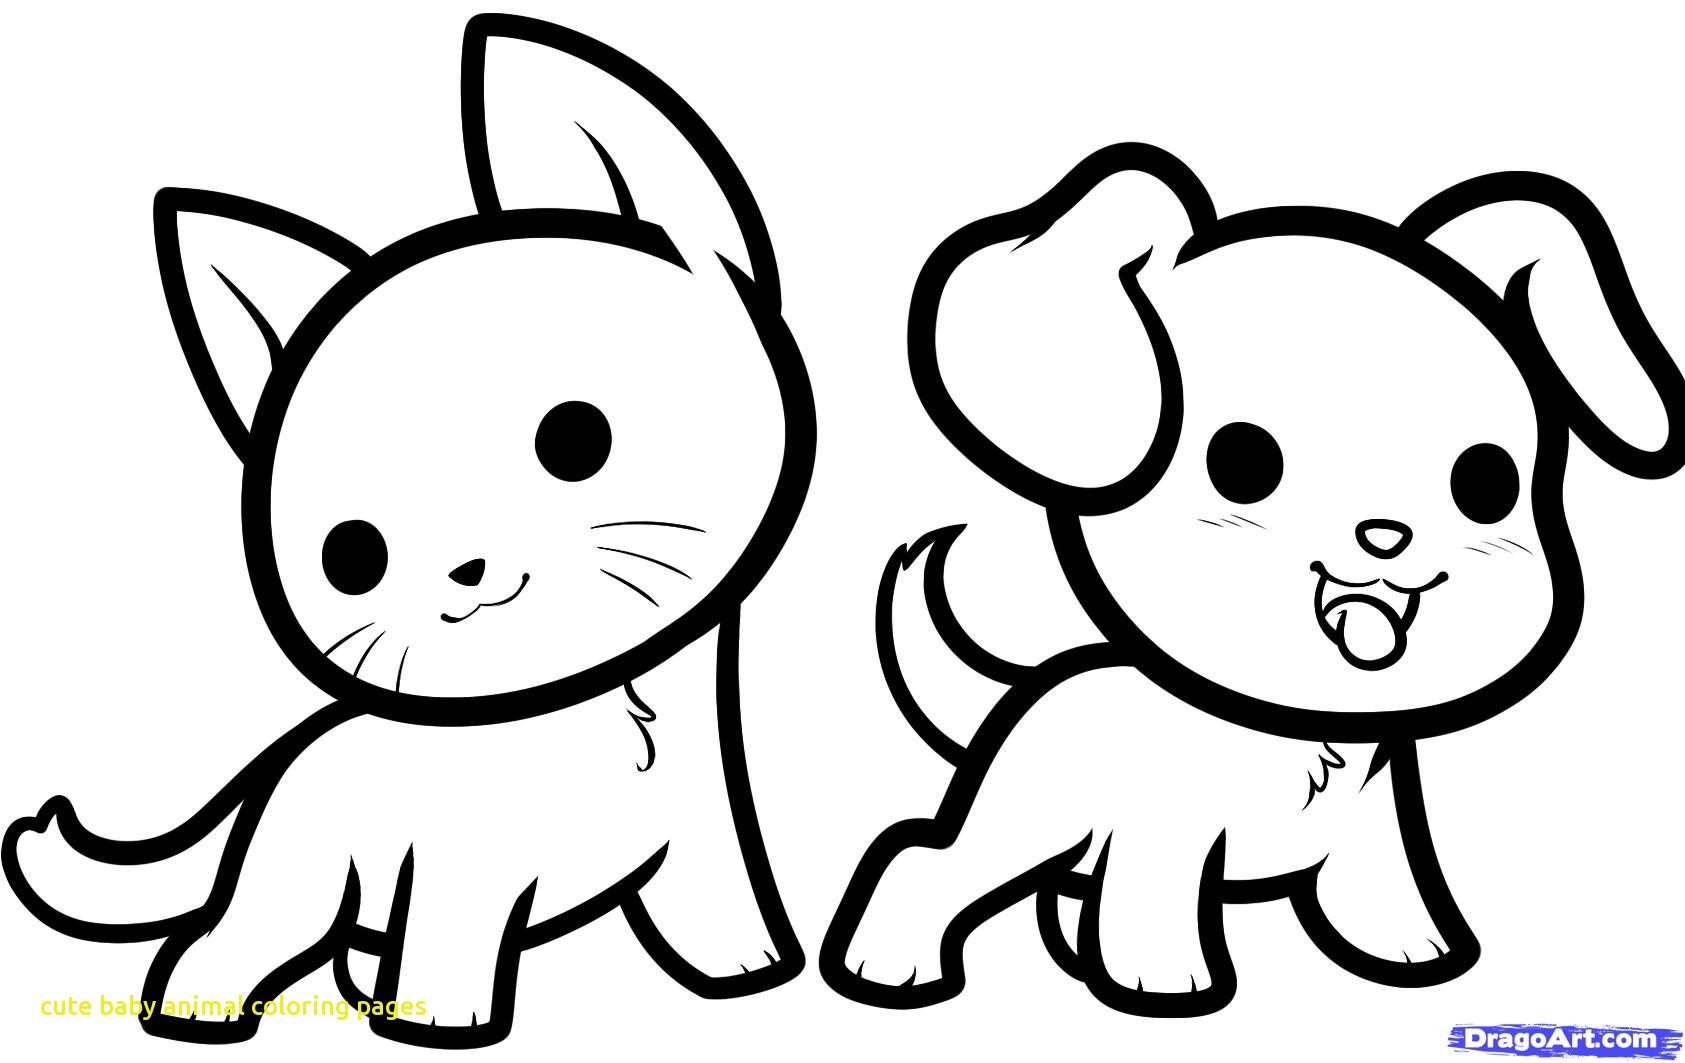 1685x1063 Last Chance Cute Animal Coloring Pages Free Printable Orango